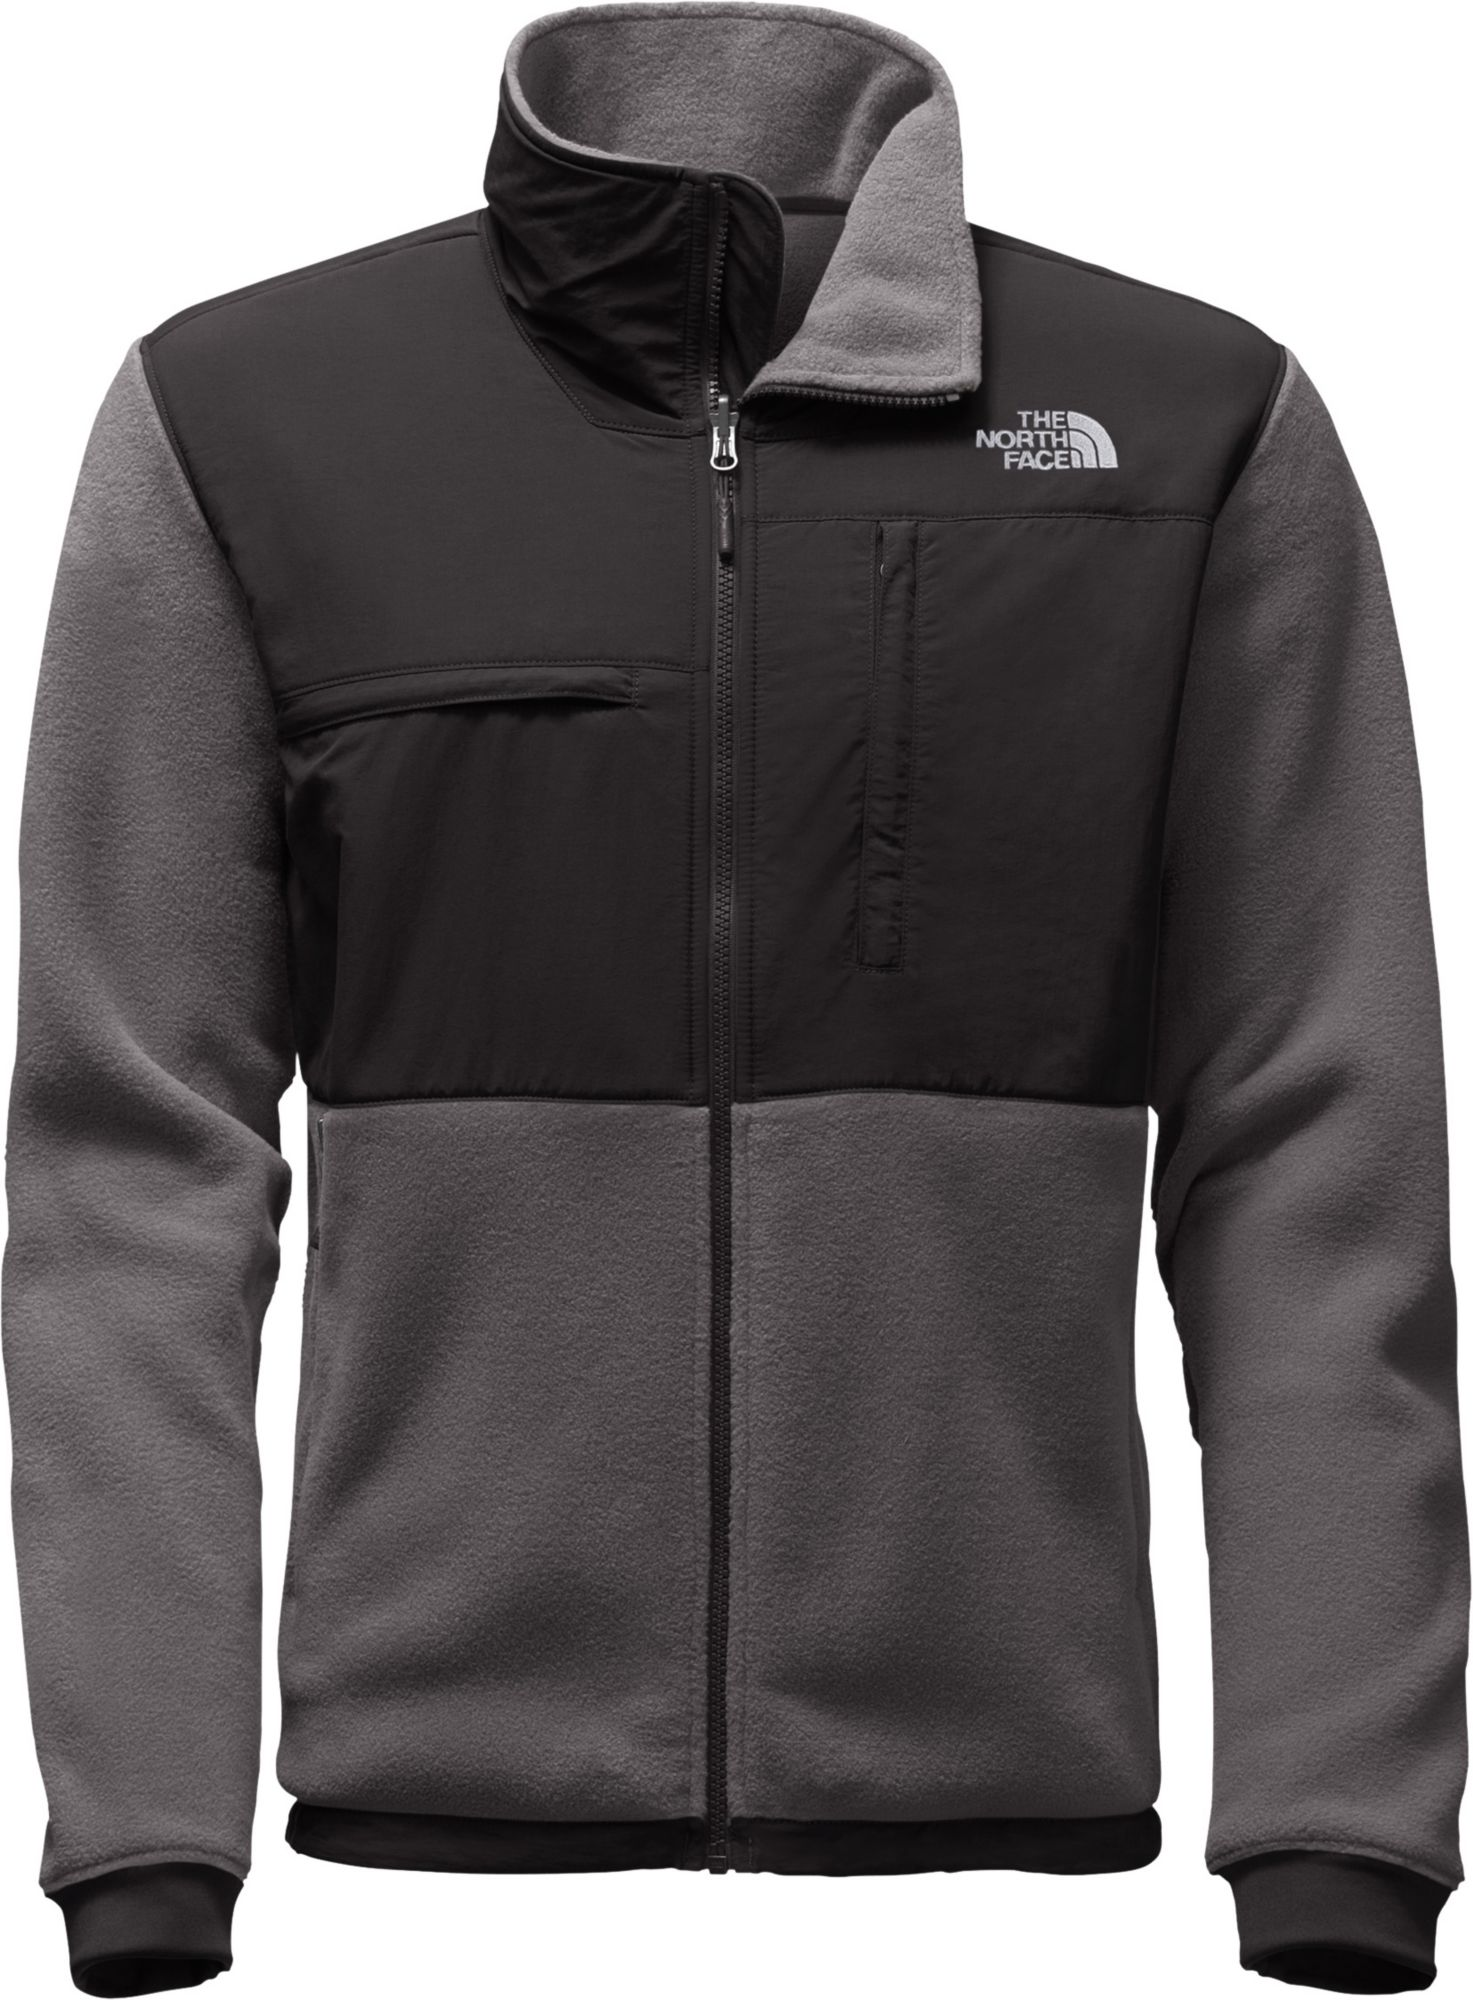 North face puffer jacket men